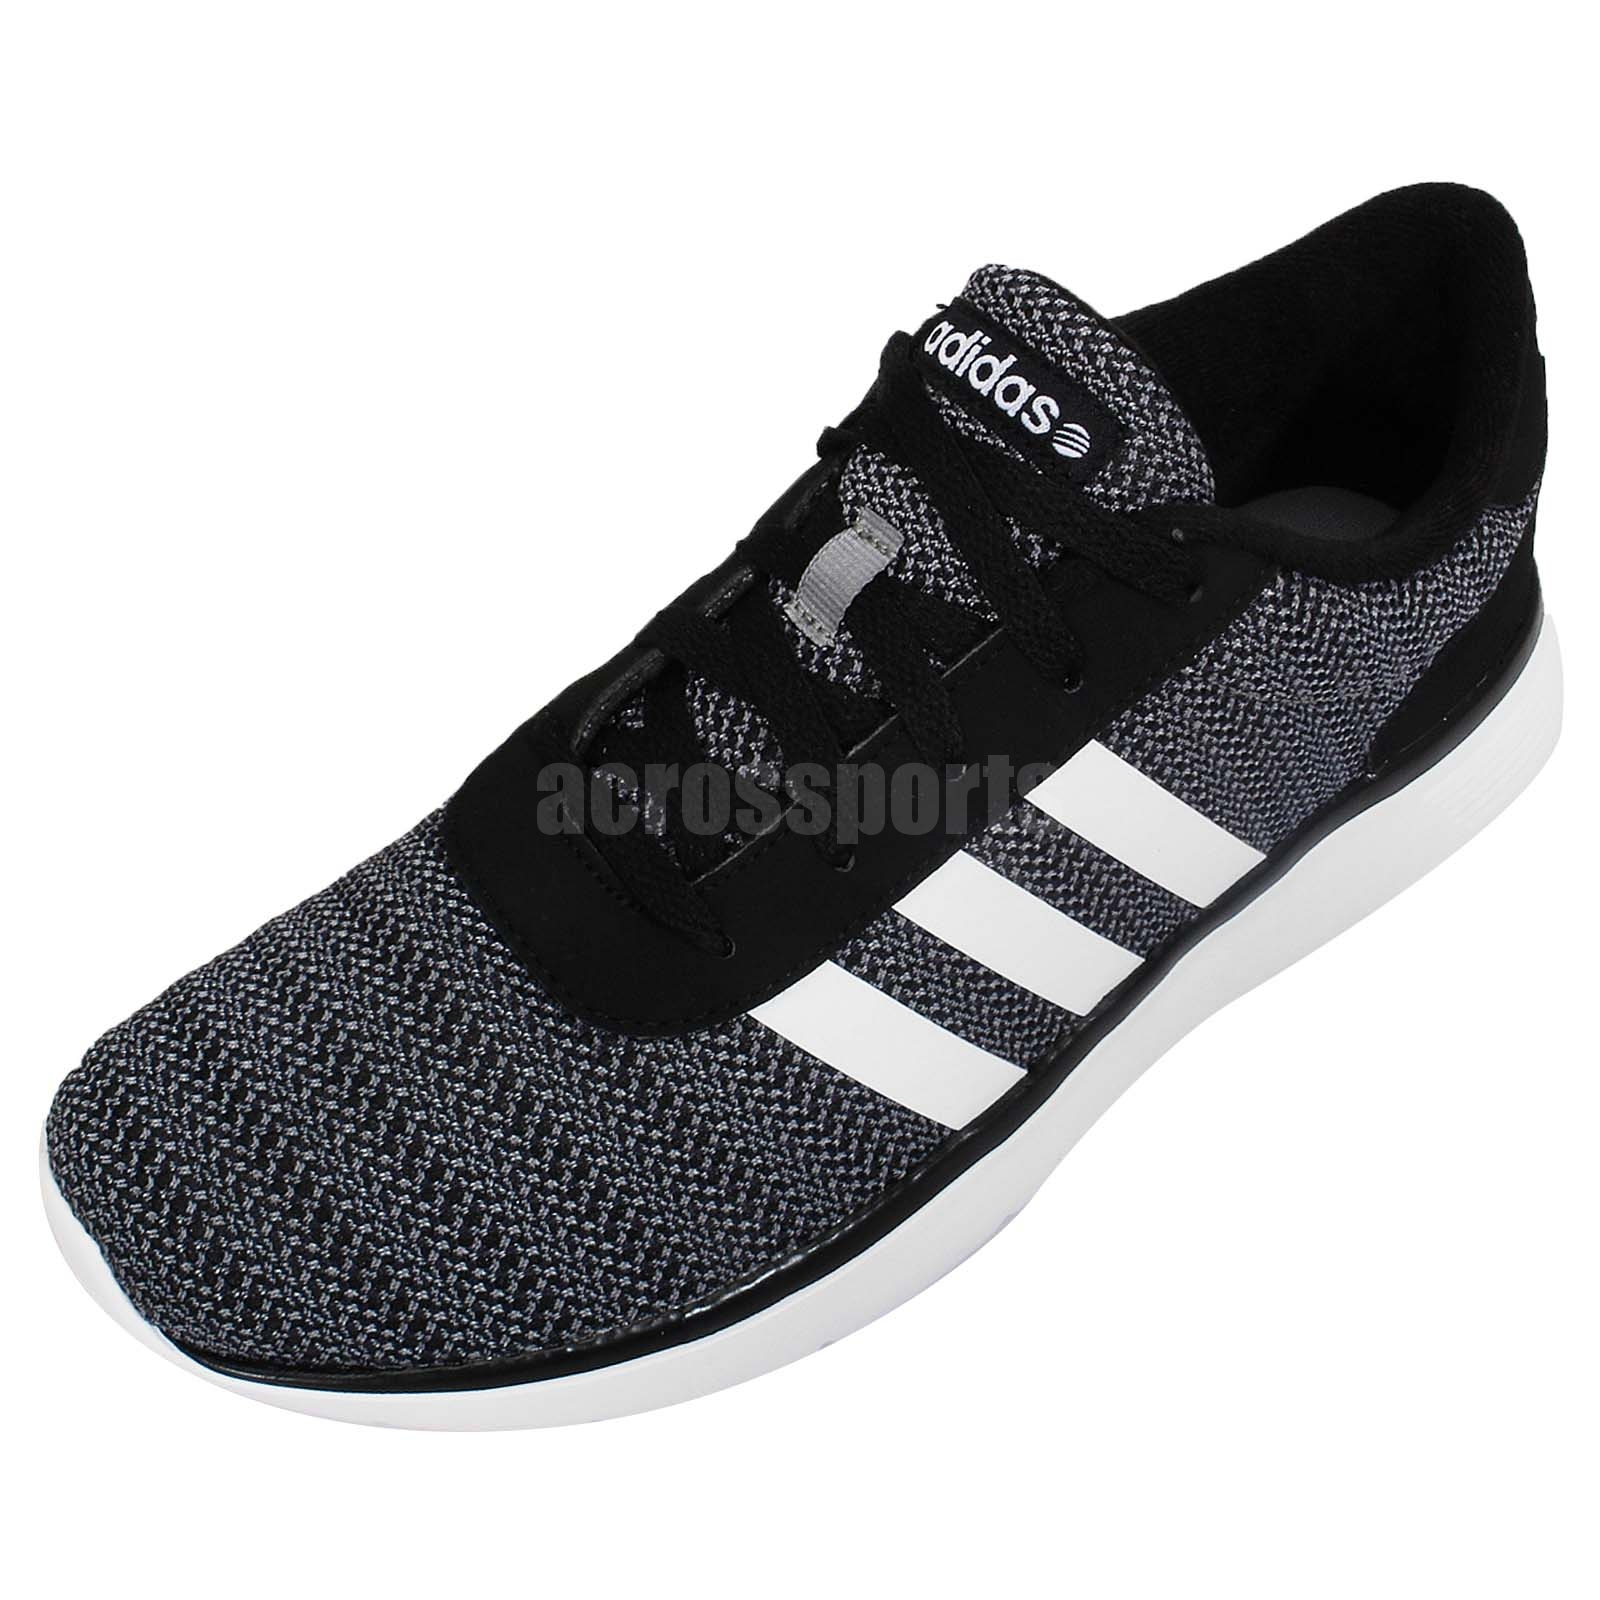 Red Adidas Label Neo Sneaker Samoagt; black And Off41 3j5A4RL